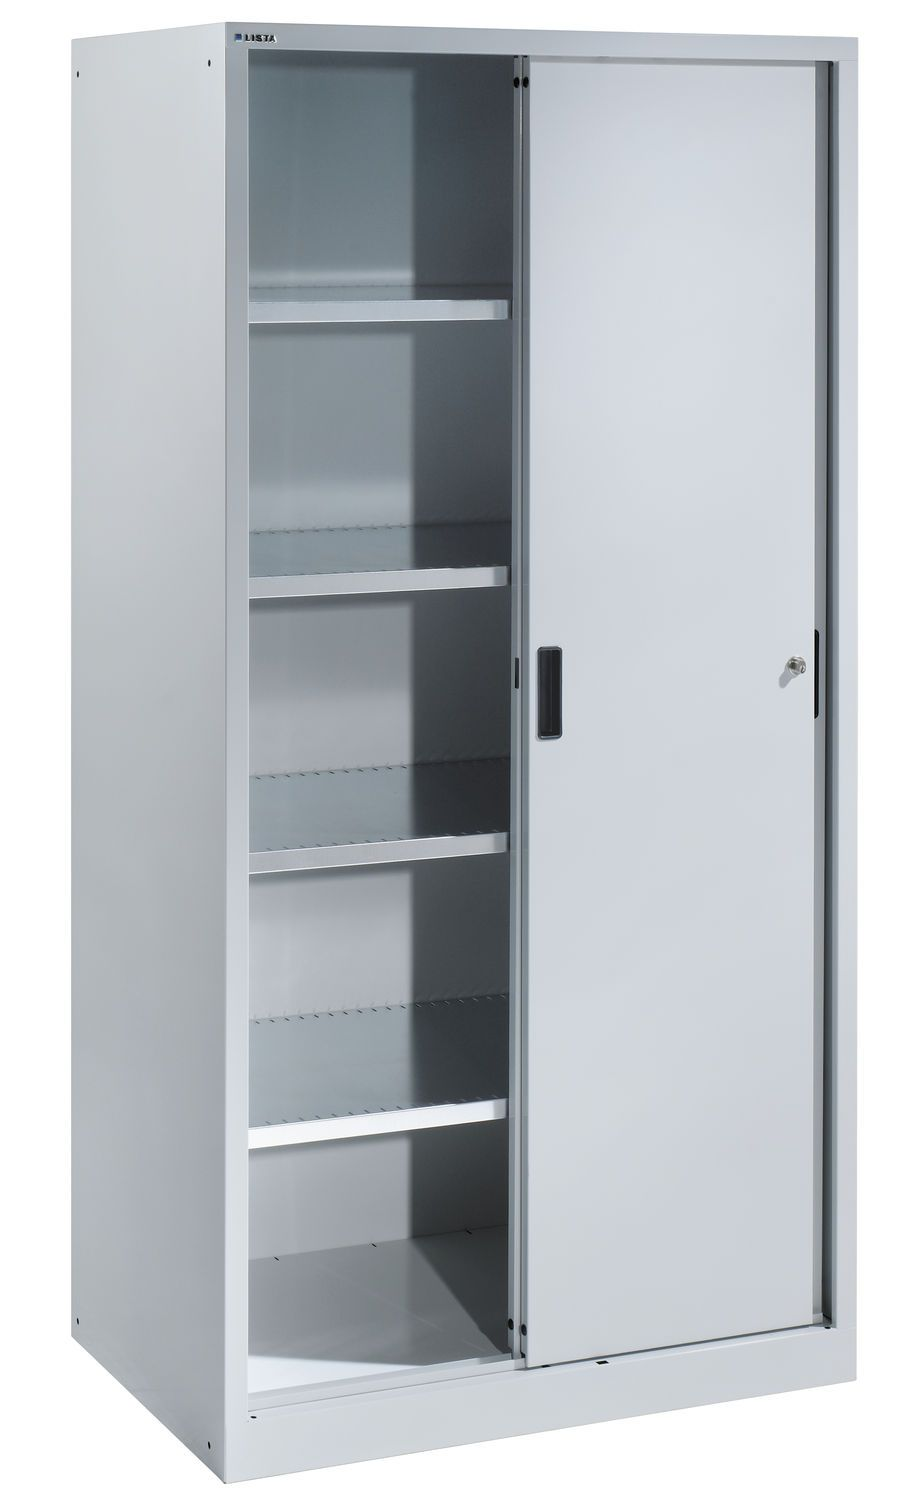 Aweinspiring Storage Cabinets with Doors also Adjustable